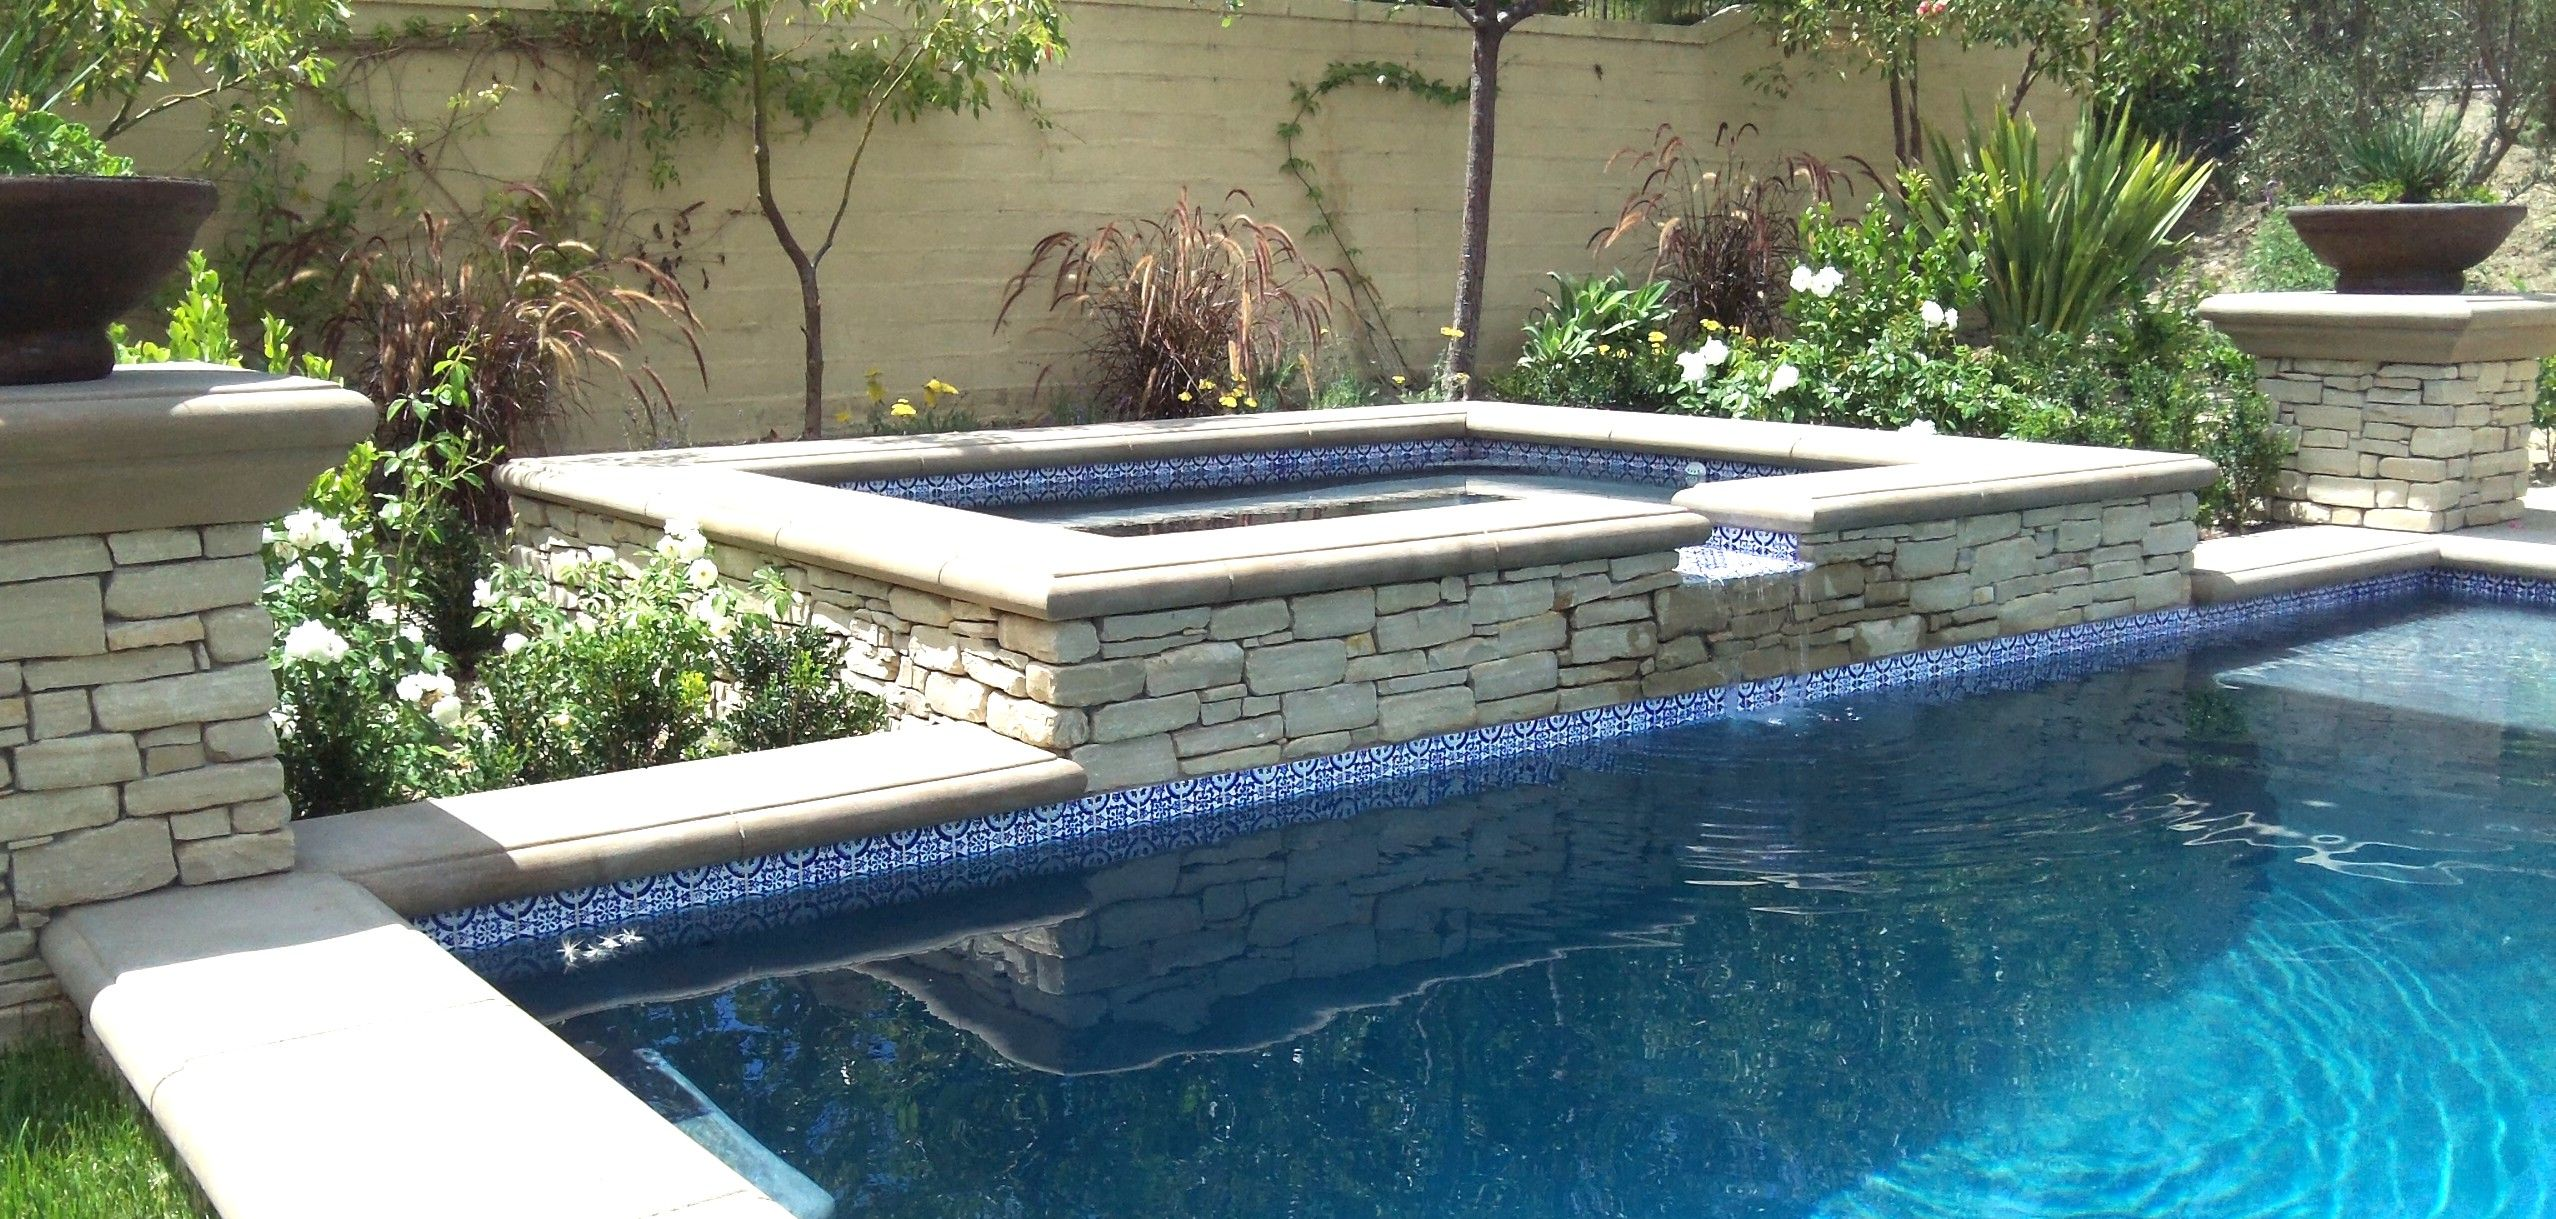 Pool tile designs pool water fountain design ideas small swimming pool fountain design pools - Swimming pool designs ...